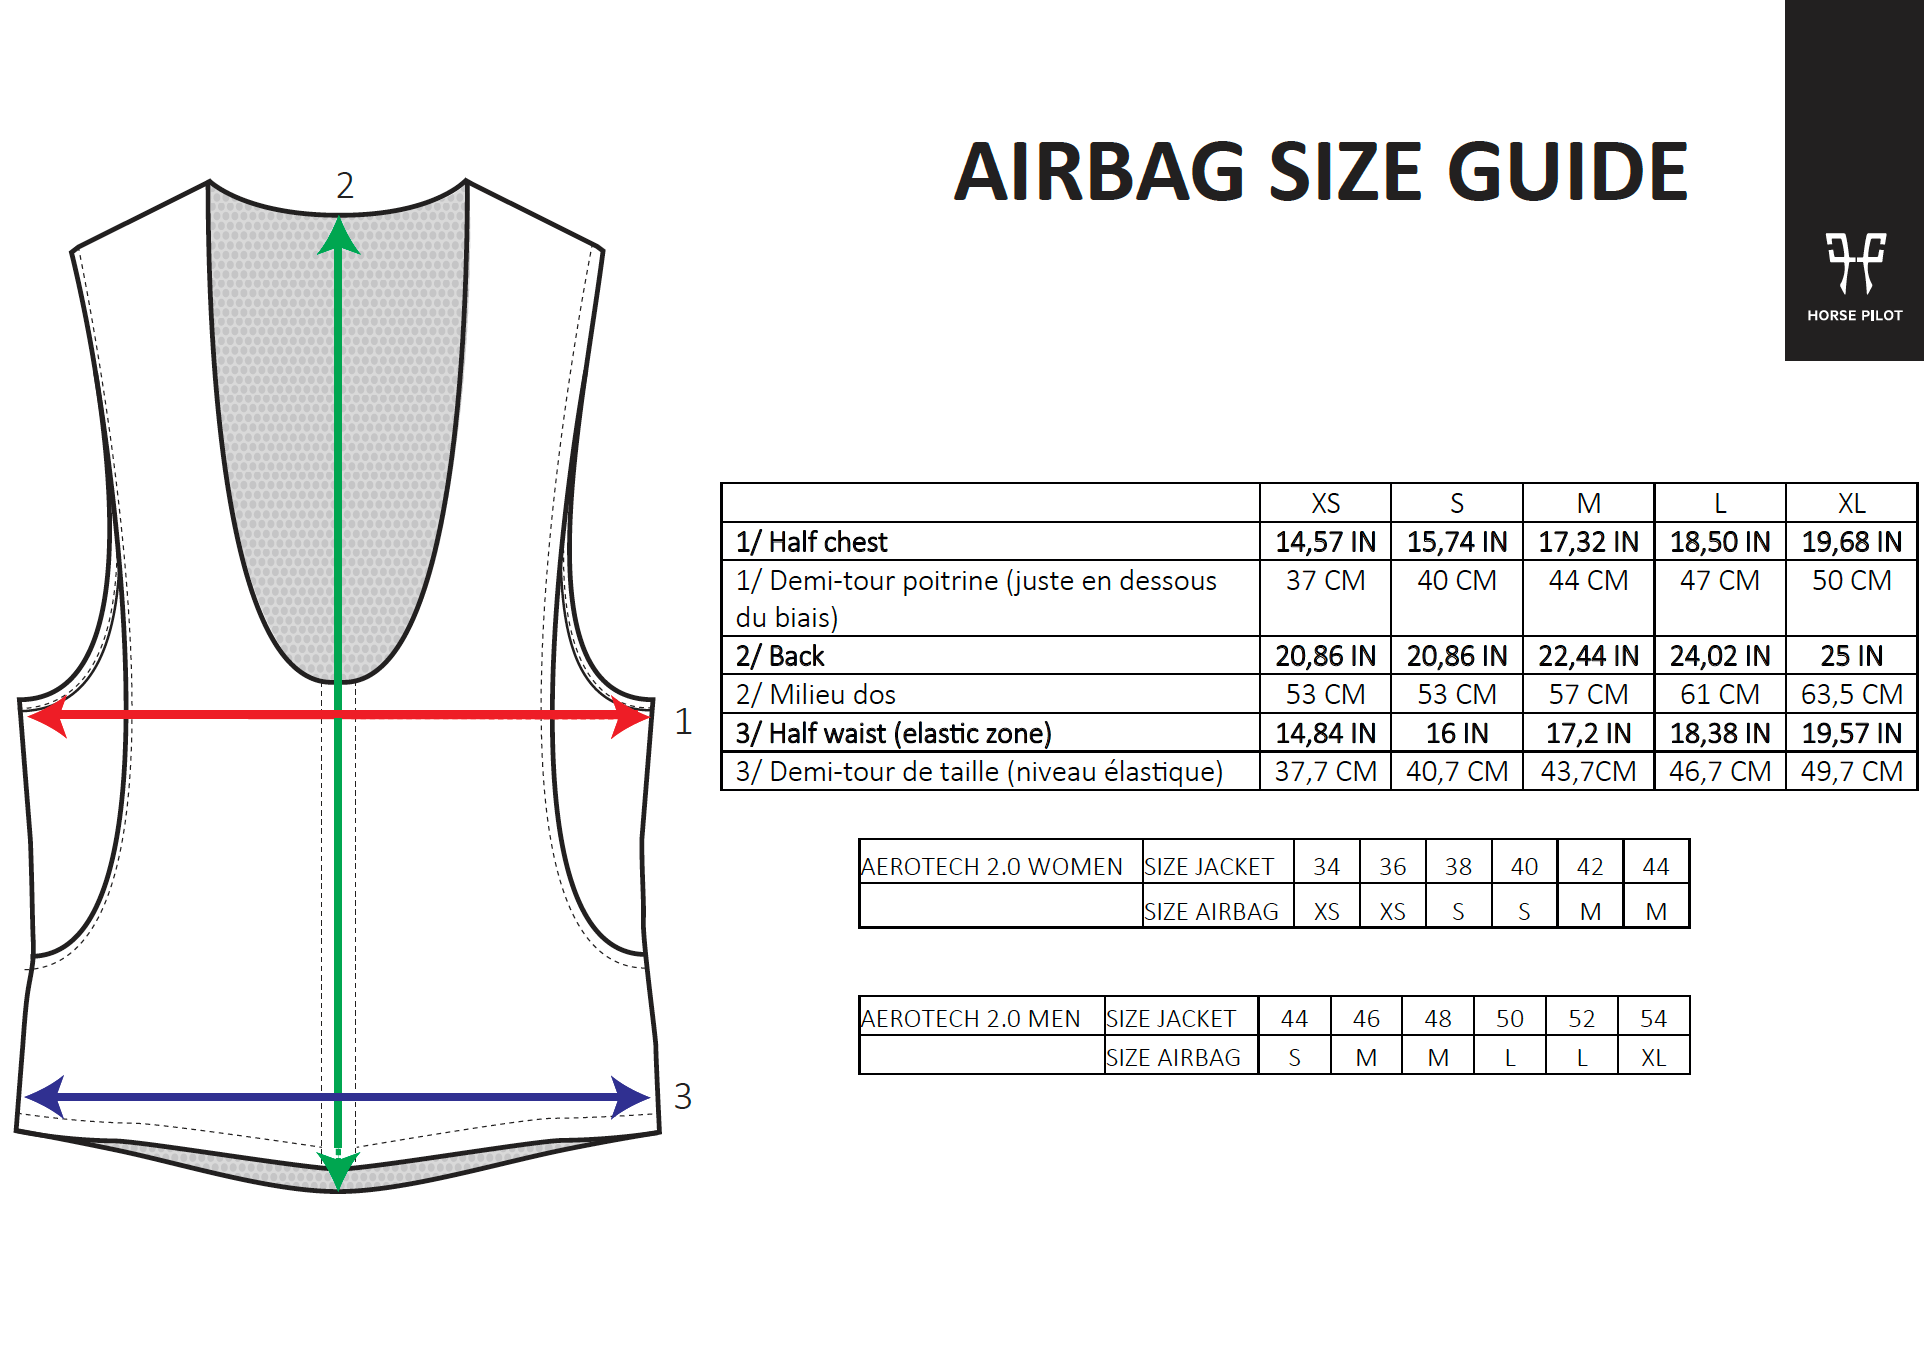 Horse Pilot Air Bag Size Chart